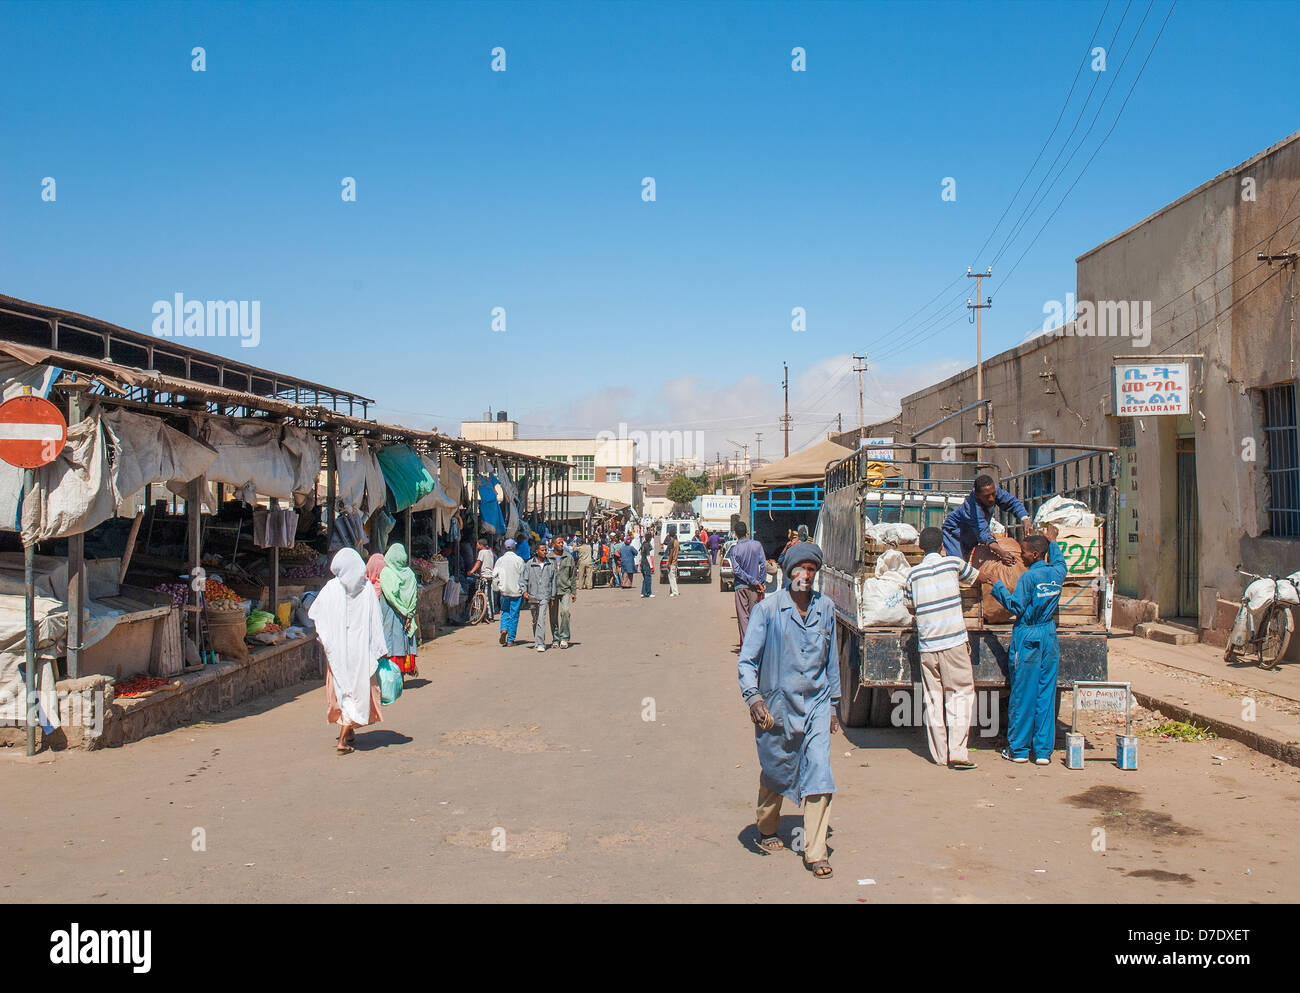 central market street in asmara eritrea - Stock Image